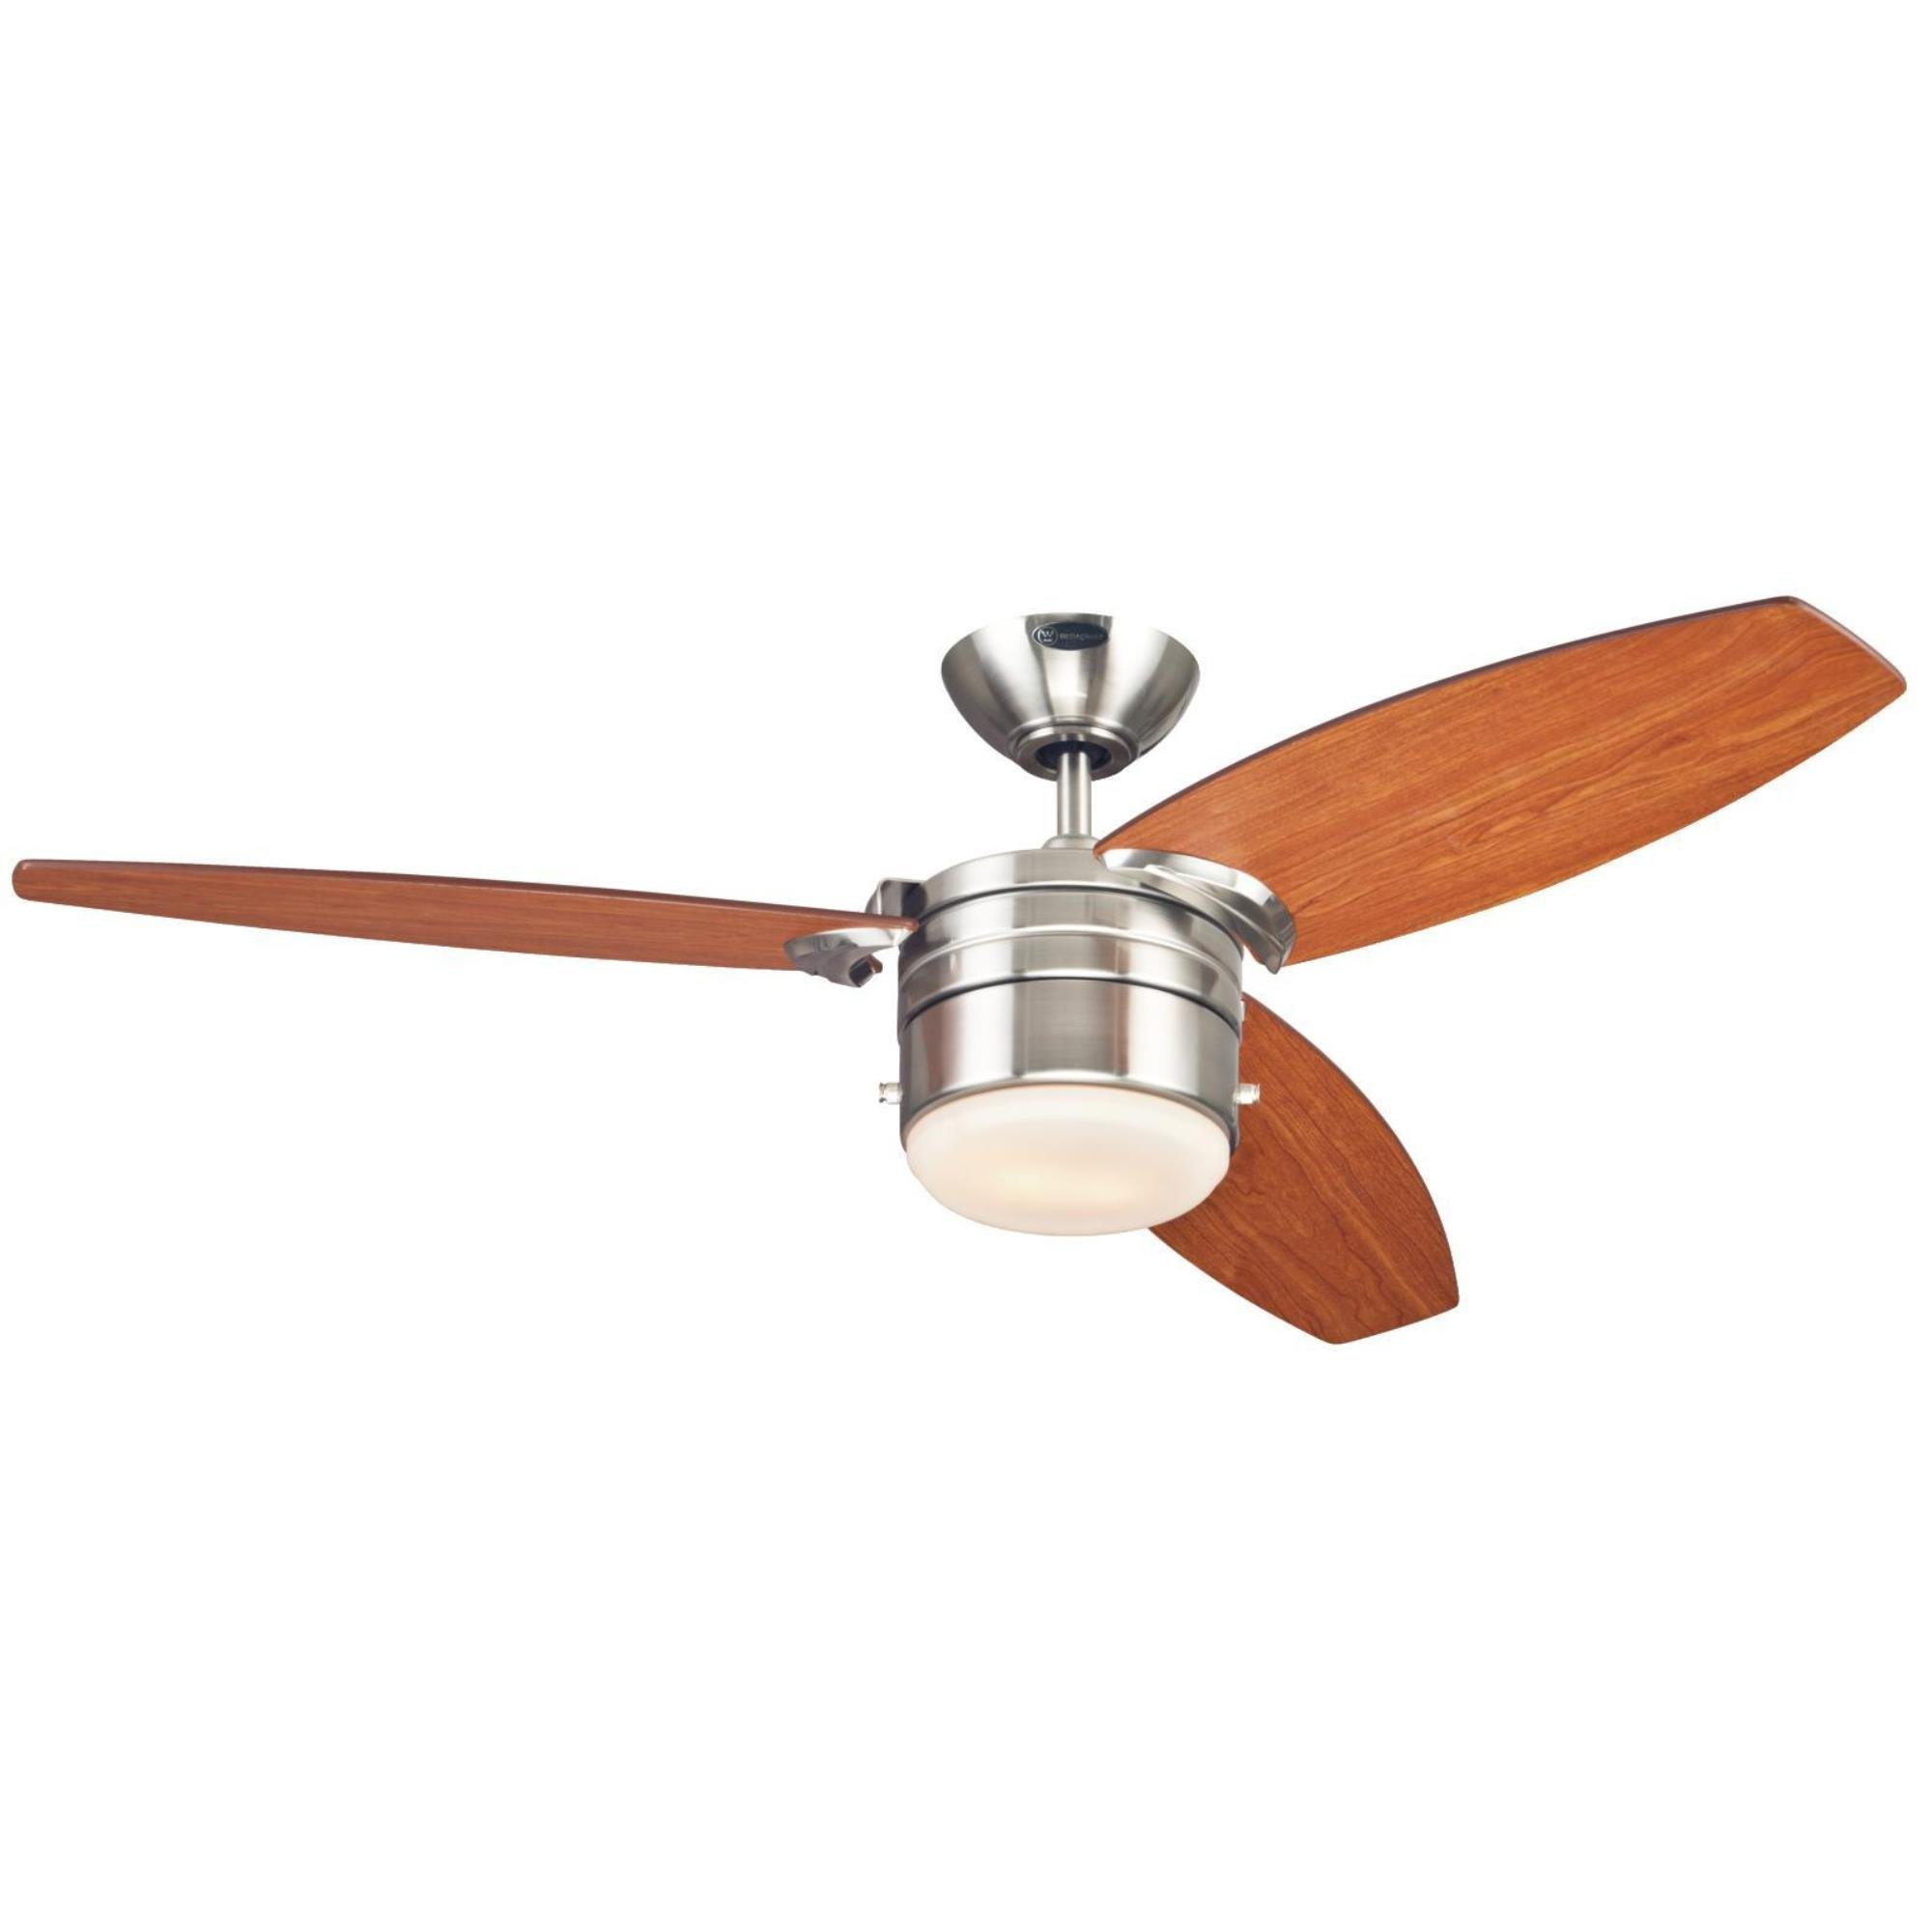 Westinghouse 7247400 Lavada One-Light Reversible Three-Blade Indoor Ceiling Fan, 48-Inch, Brushed Nickel Finish with Opal Frosted Glass by Westinghouse